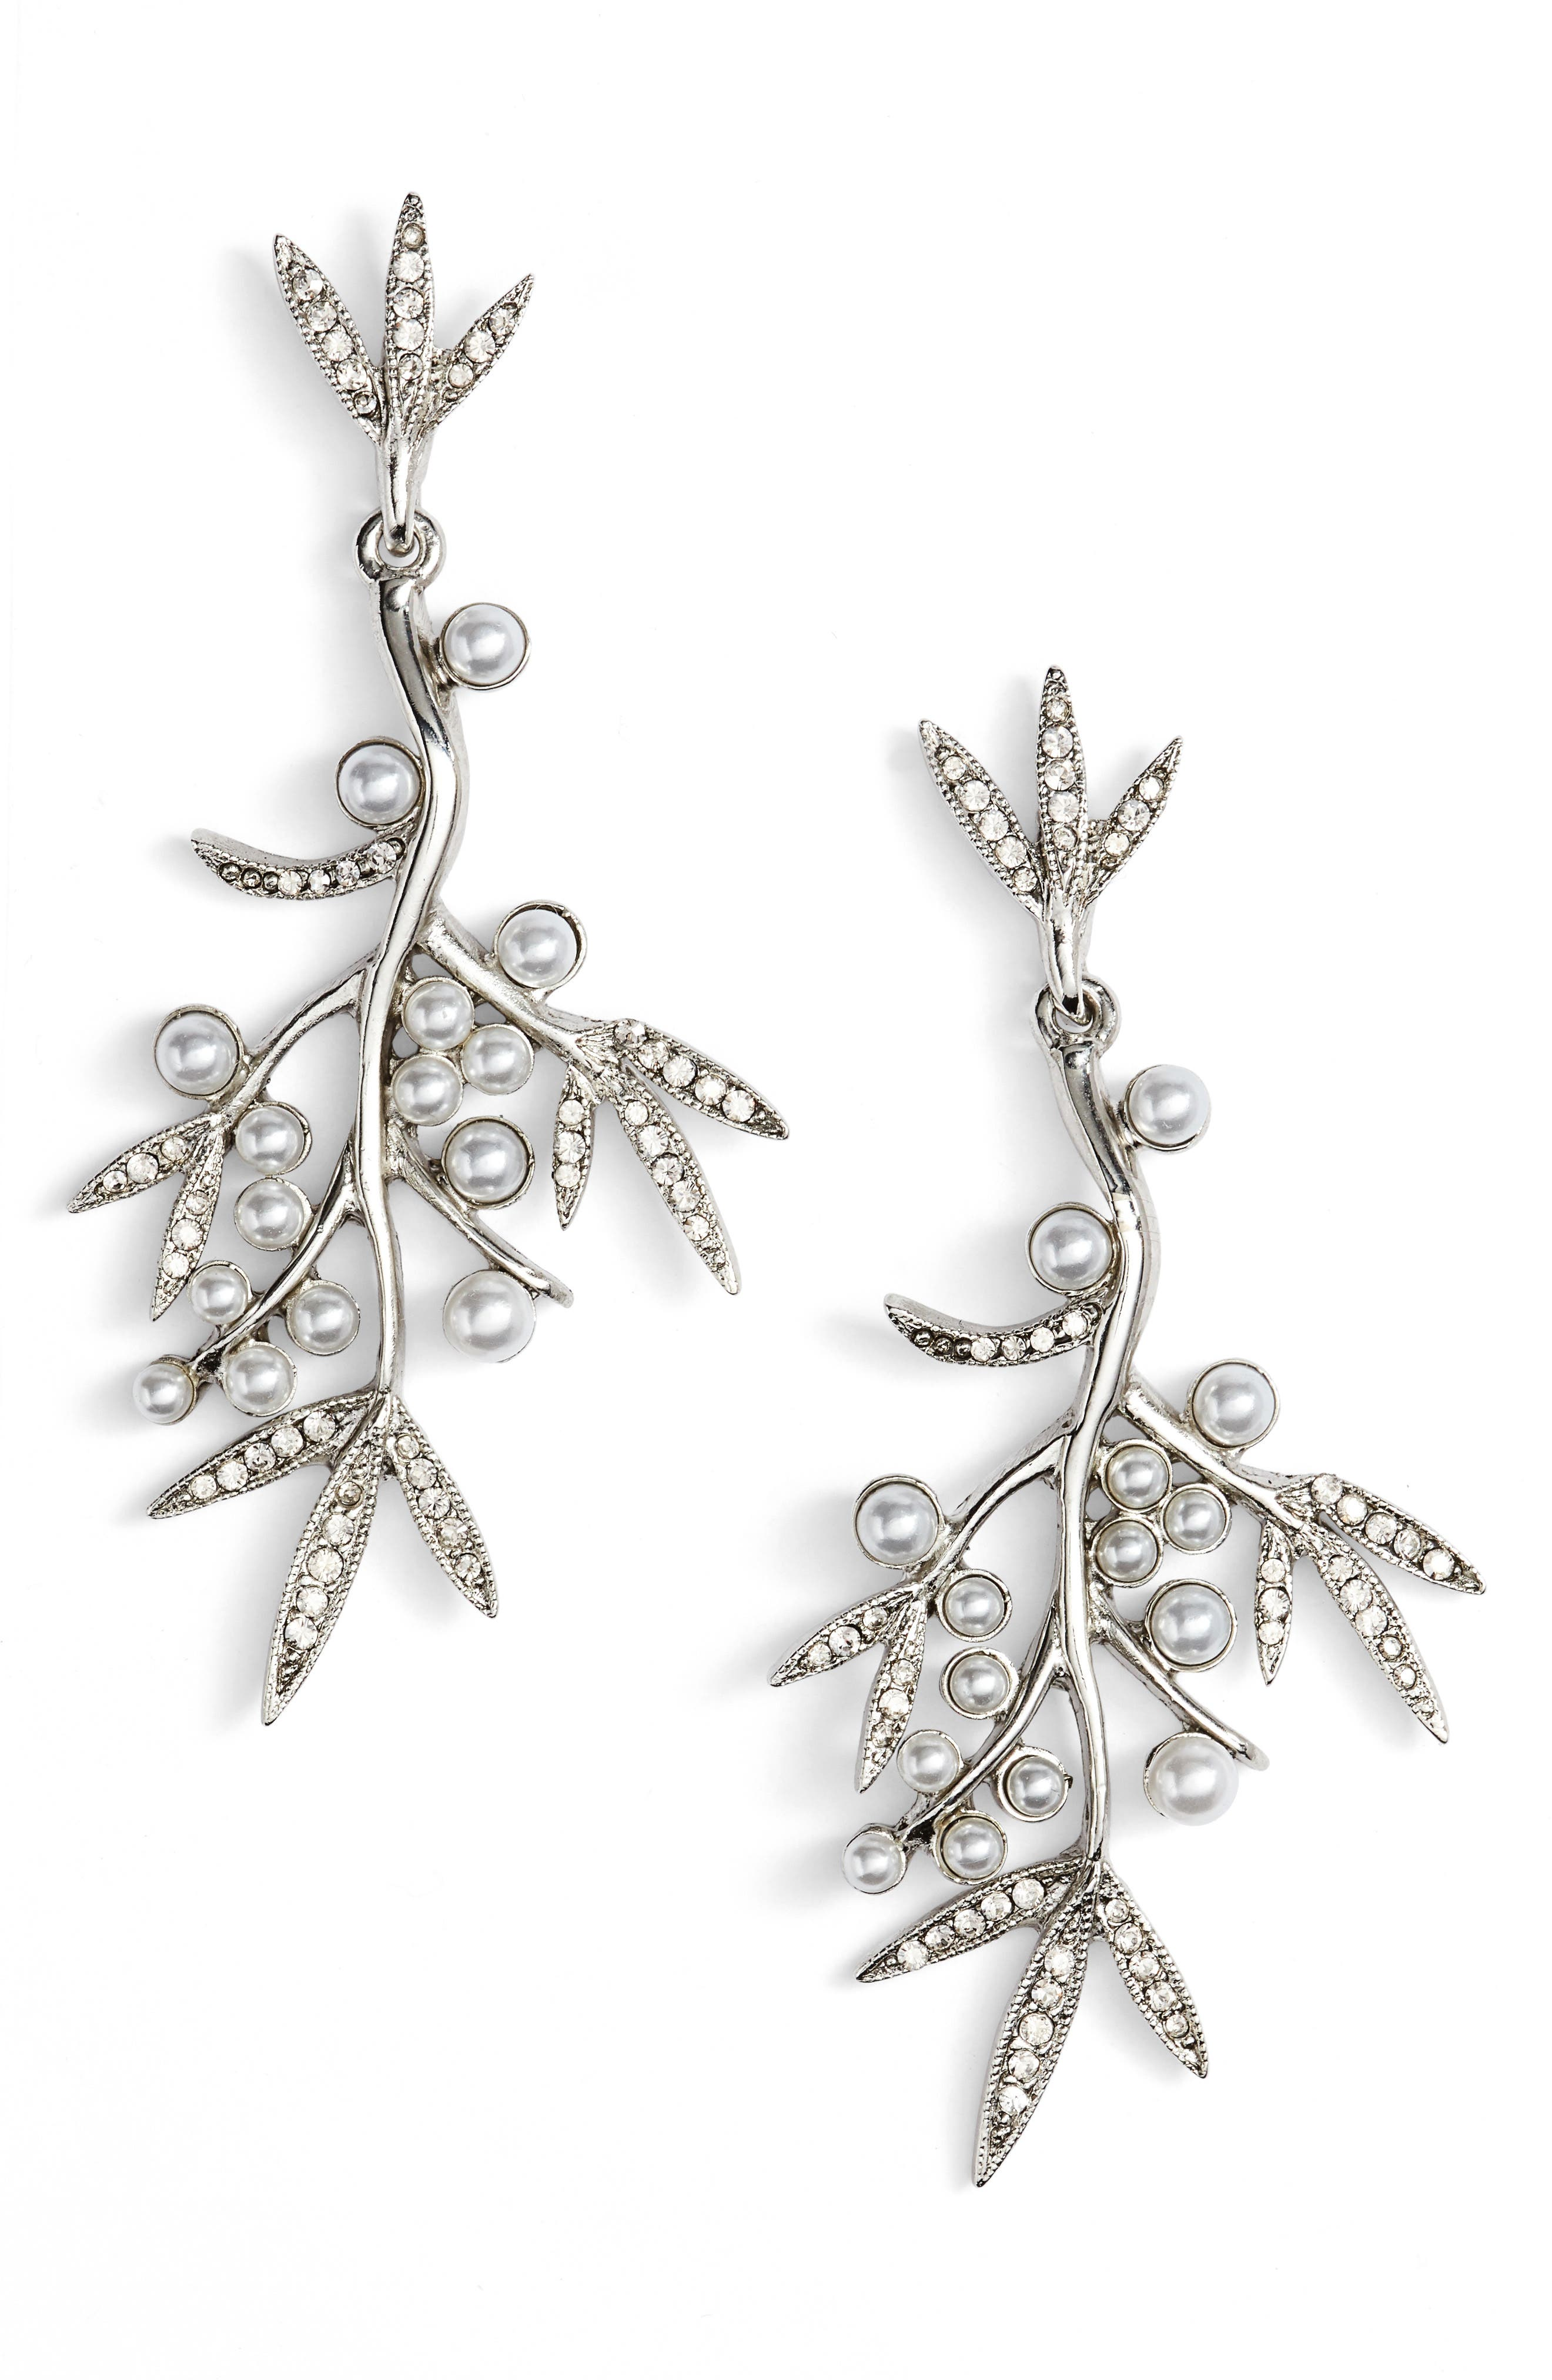 Main Image - Oscar de la Renta Imitation Pearl & Crystal Drop Earrings